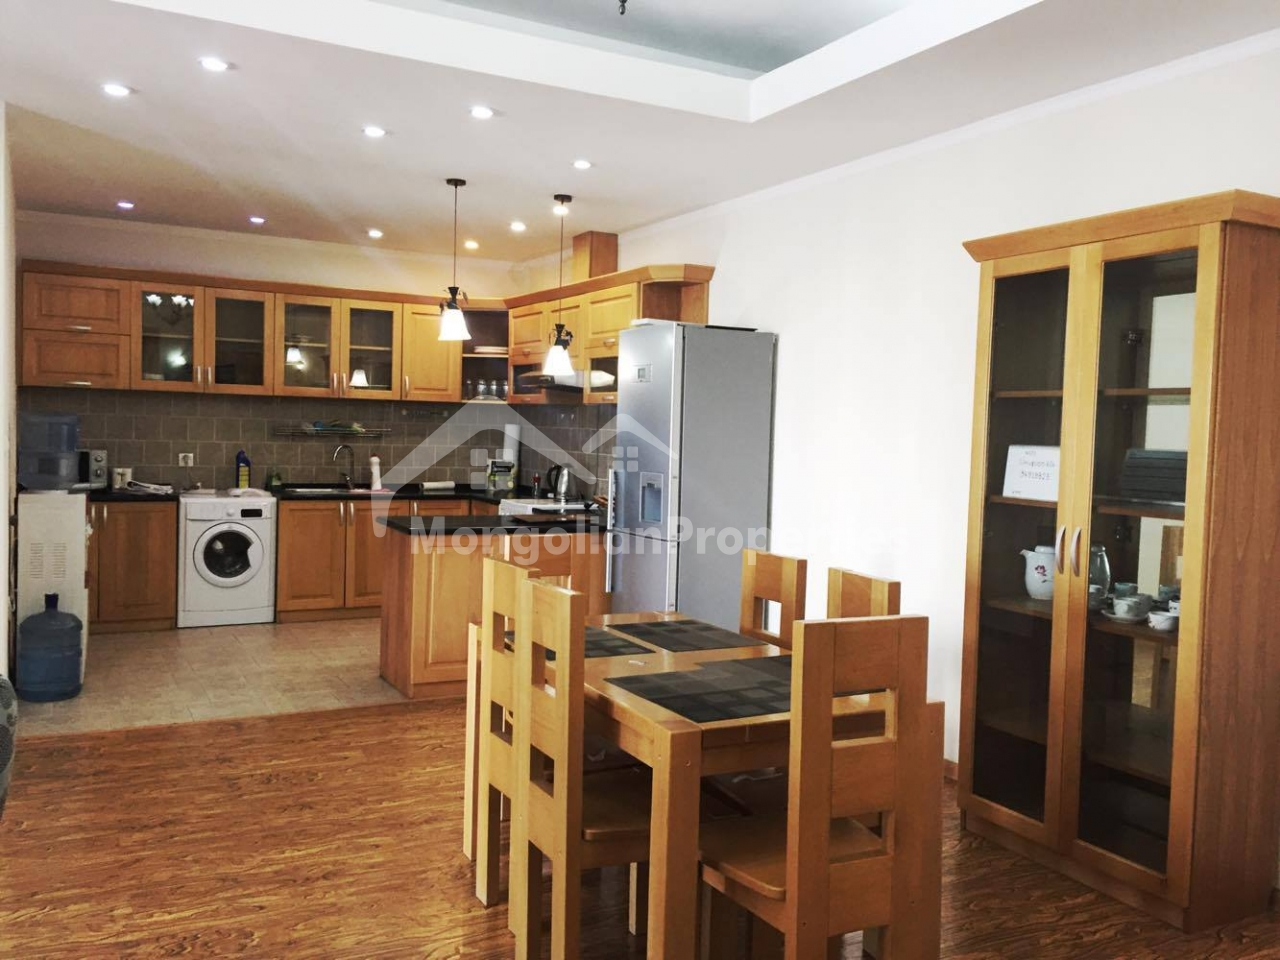 Great View, Cozy 3 bedroom apartment is for rent at the Regency Residence